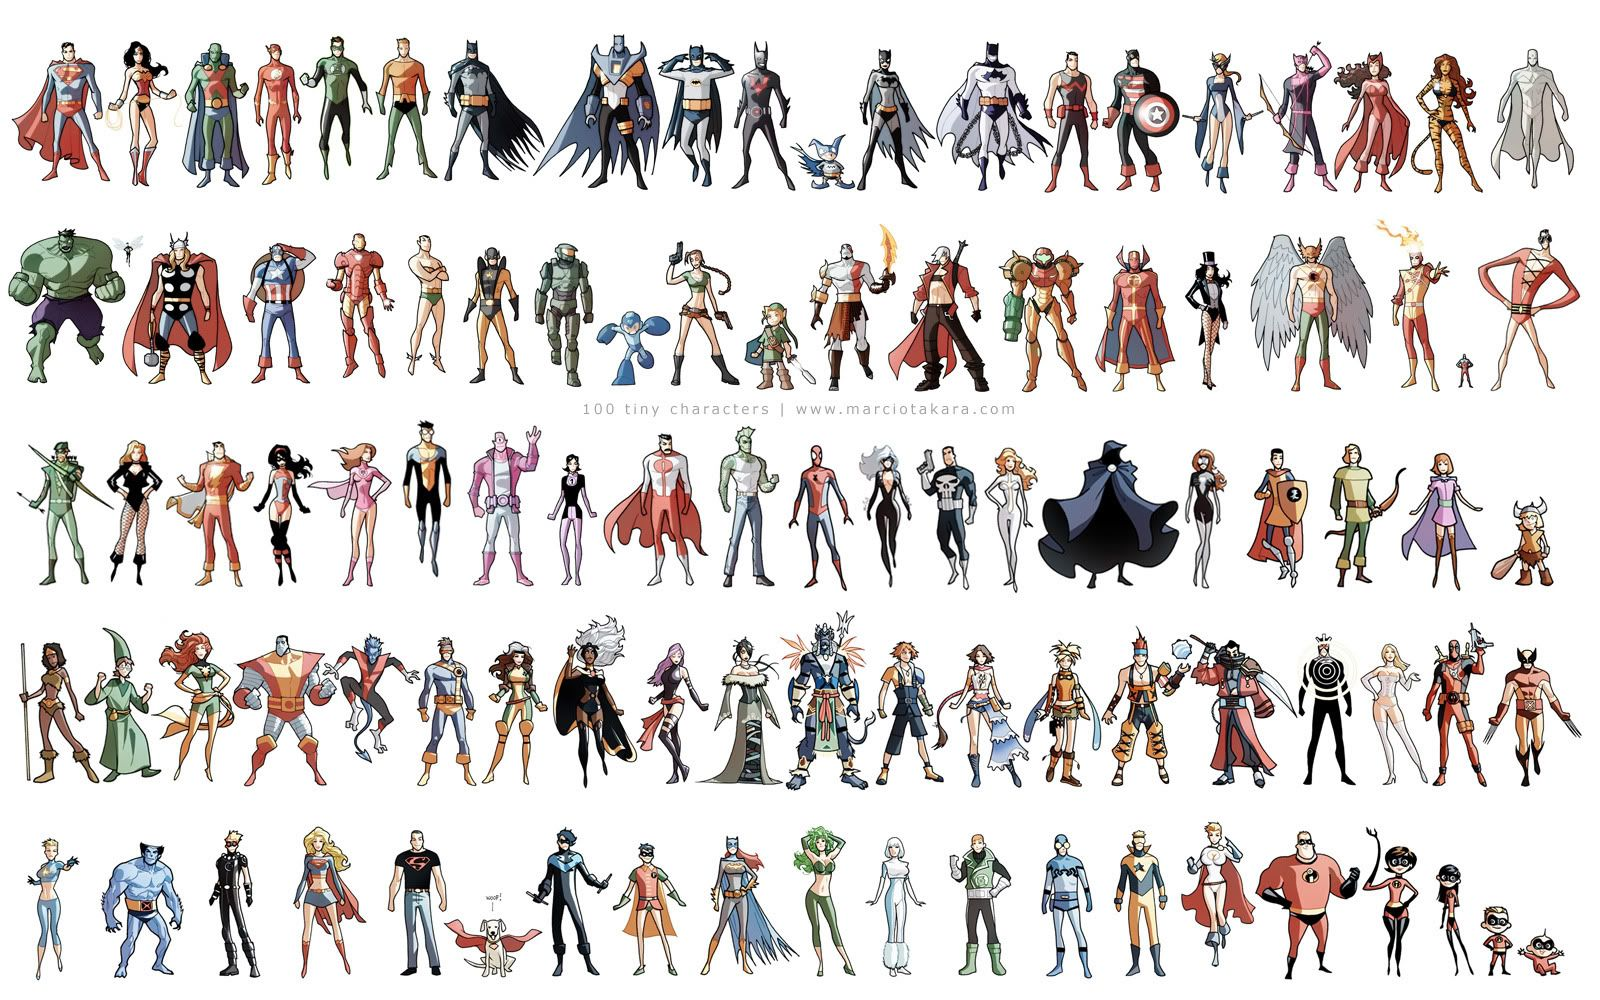 100 mini heroes photo 100_tiny_characters_wallpaper_by_ma.jpg ...